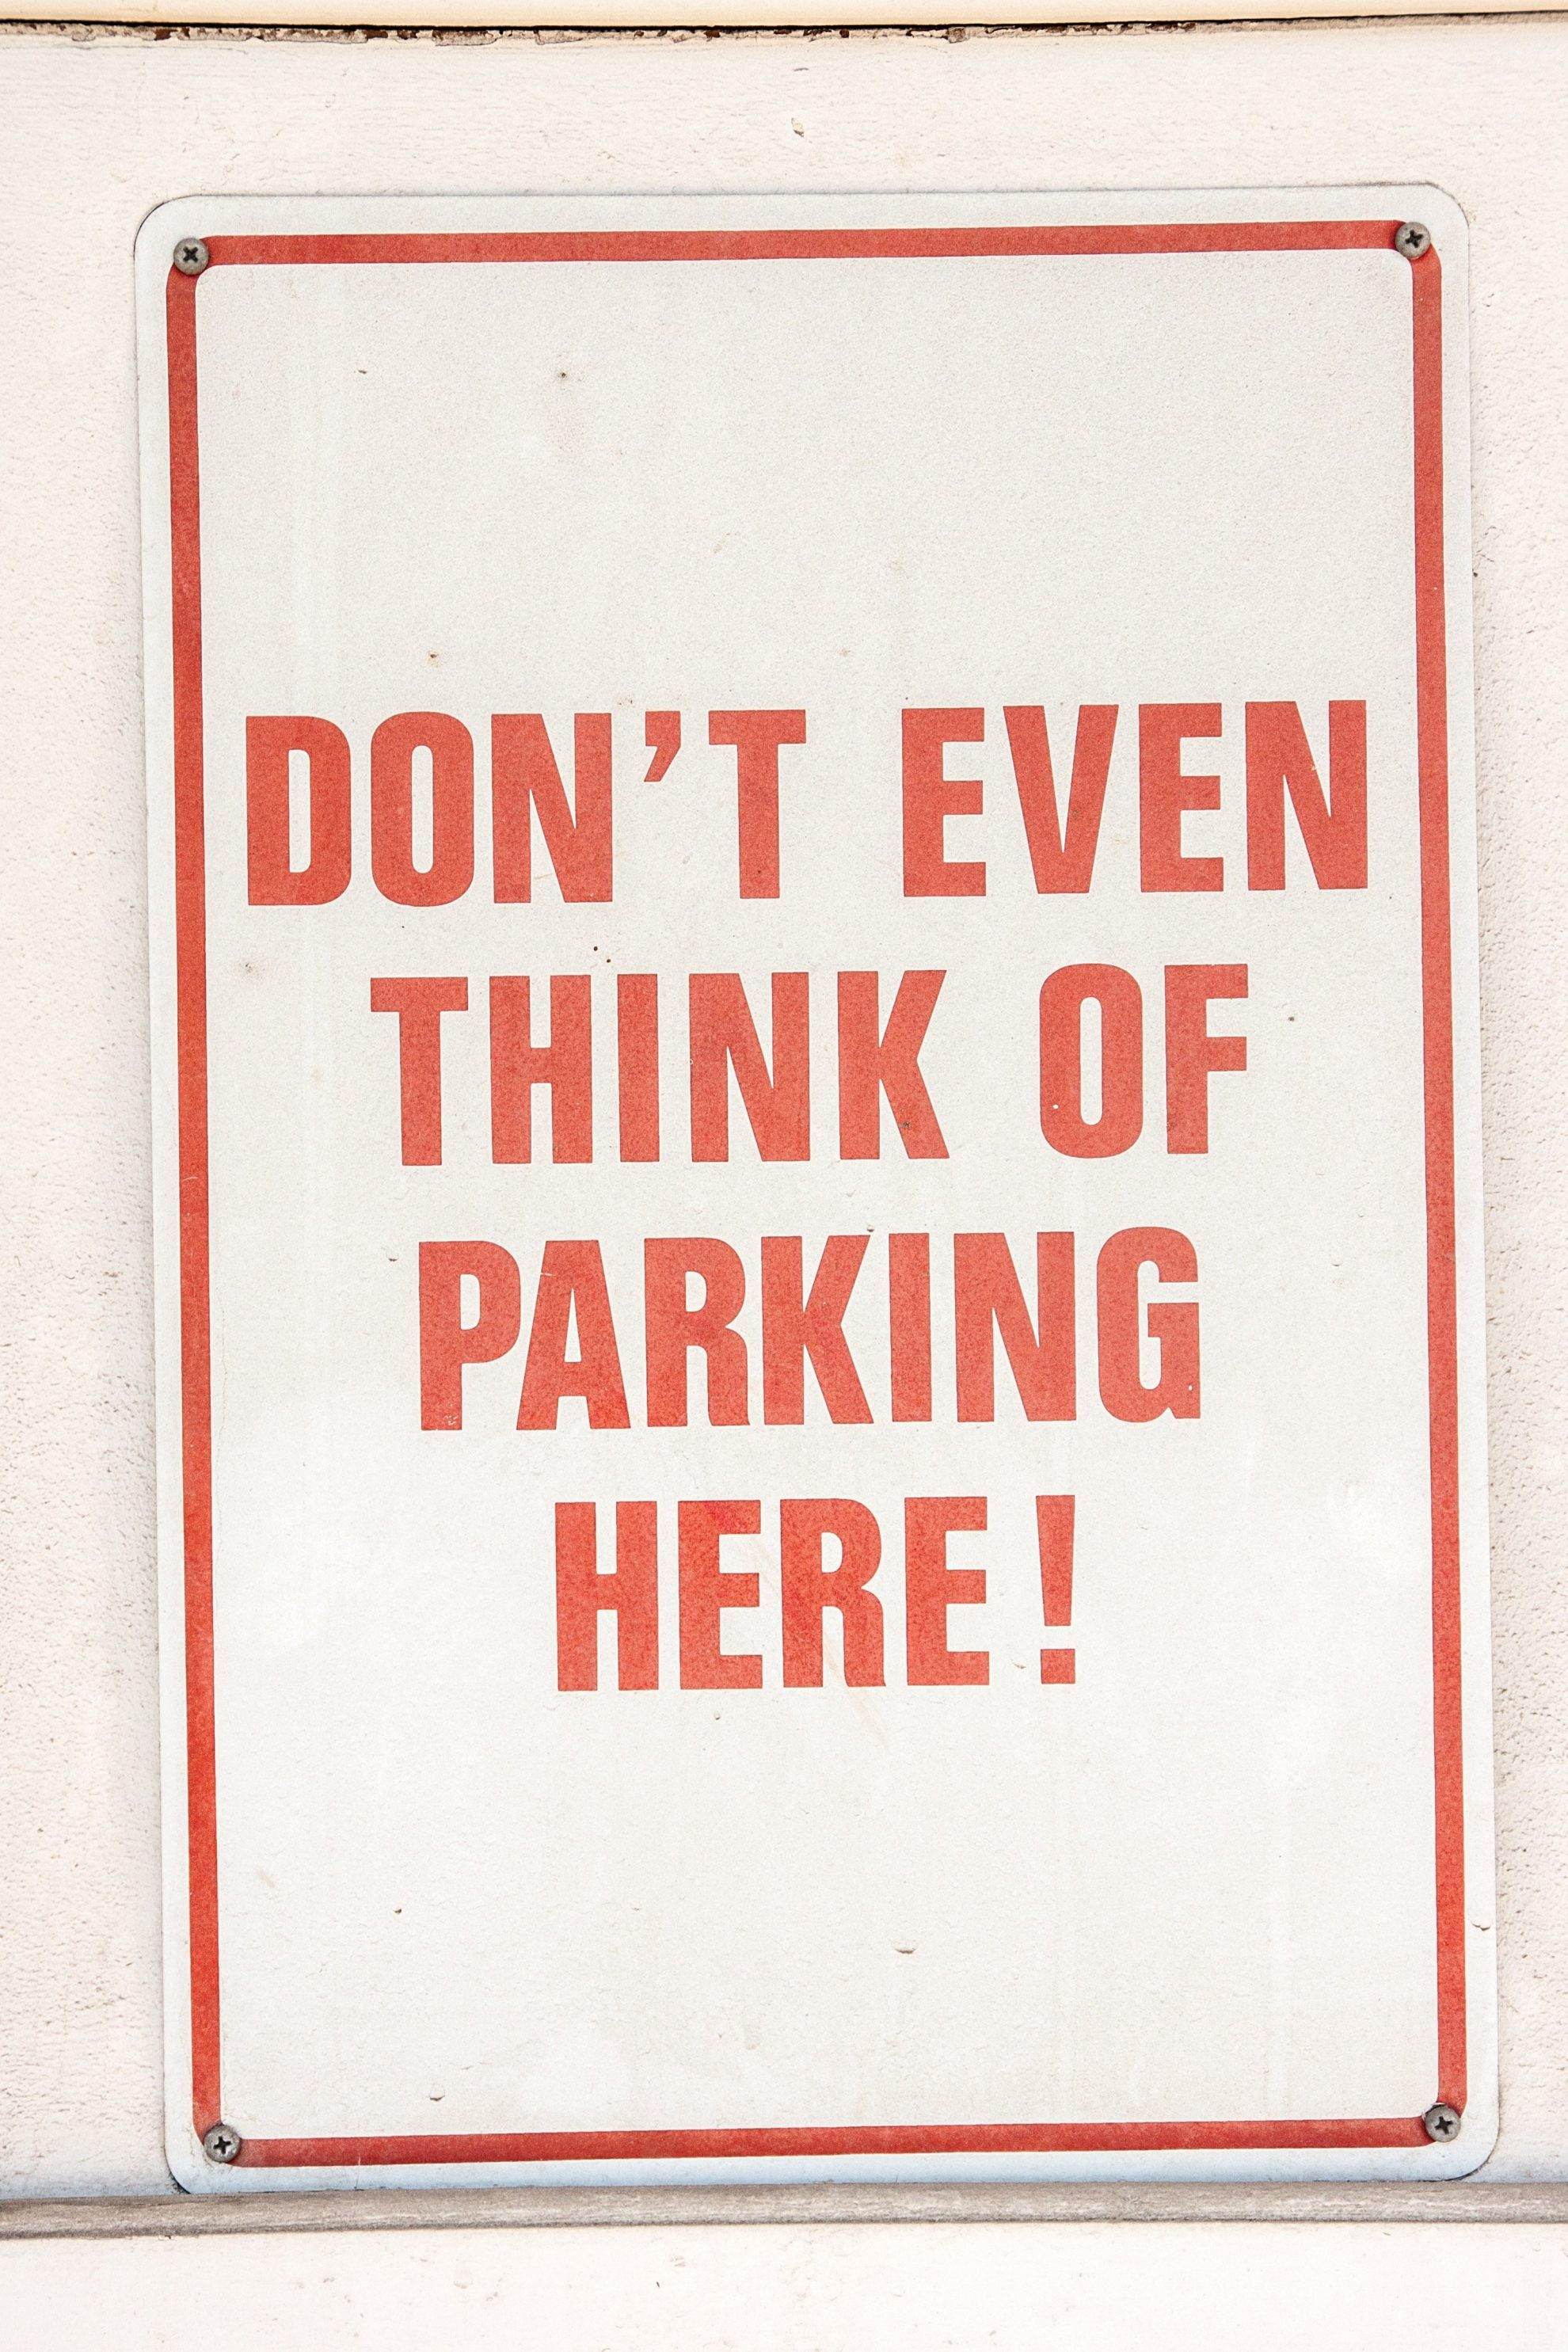 Don't even think of parking here! Car seats inside